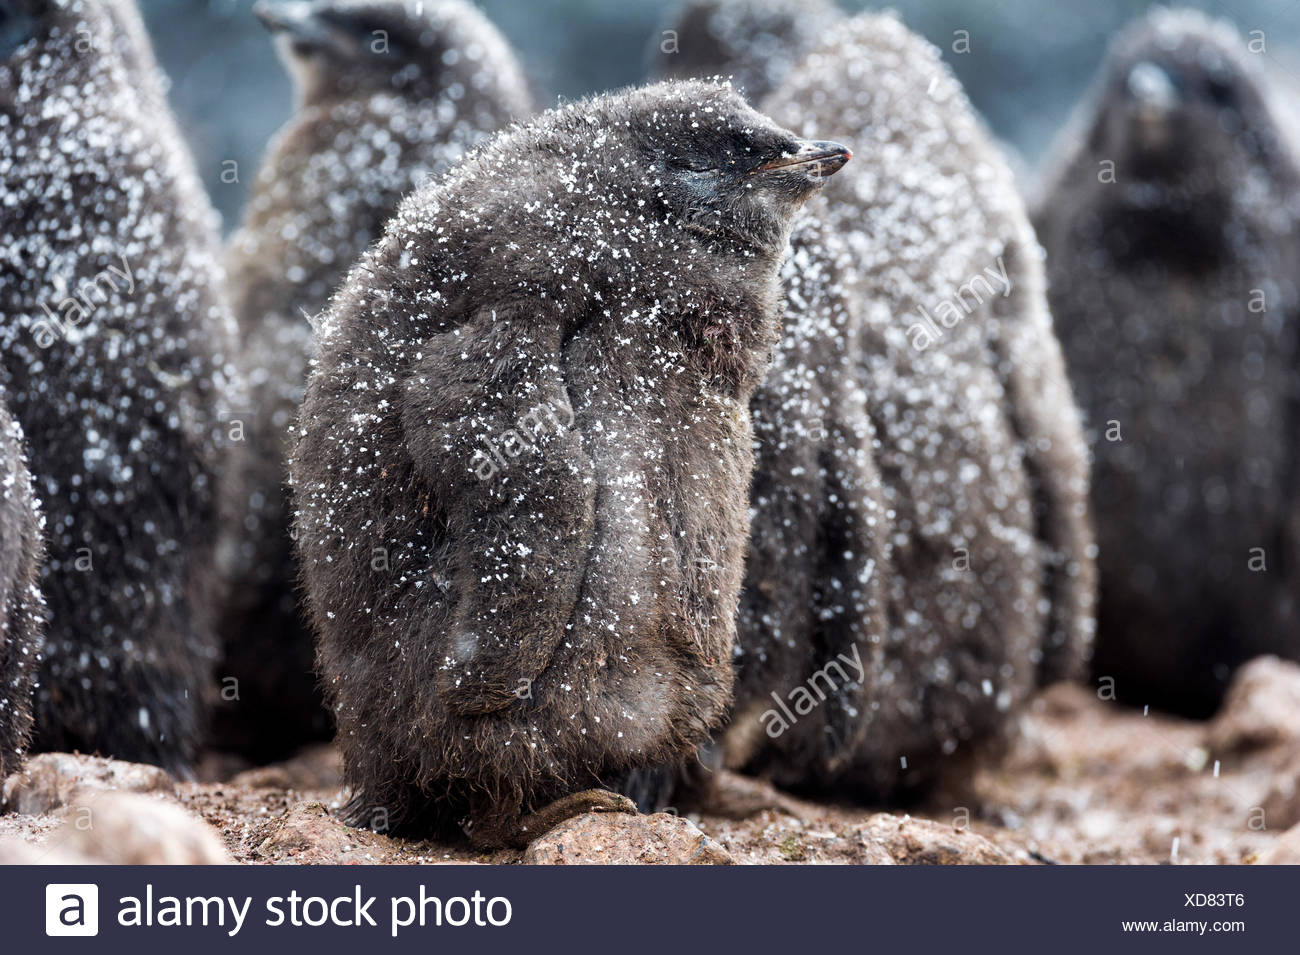 A creche of fluffy Adelie Penguin chicks covered in a dusting of snow on a beach in Antarctica. - Stock Image